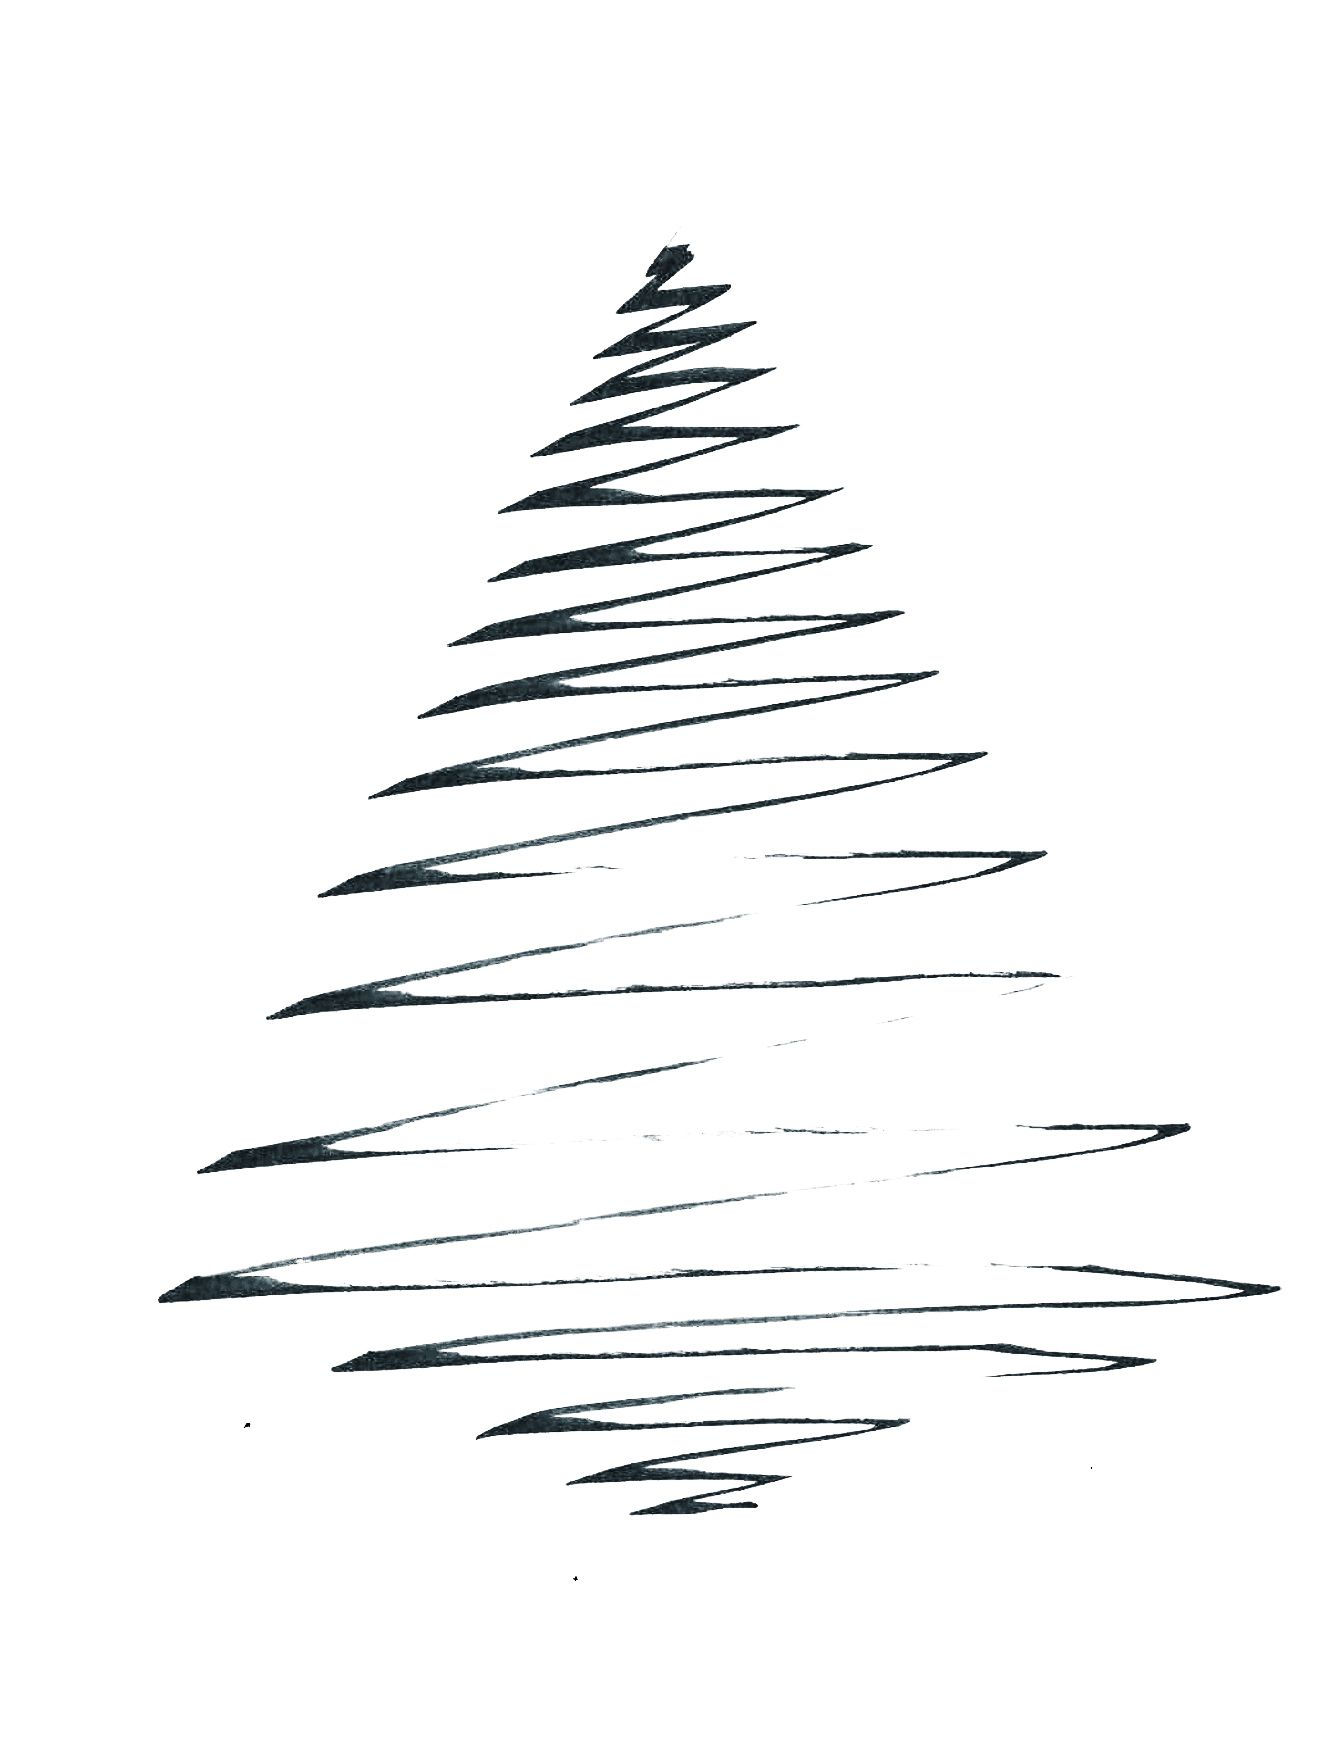 Minimalistic Black And White Christmas Card Christmas Tree Line Drawing Illustration Christmas Tree Drawing Christmas Tree Art Christmas Graphic Design